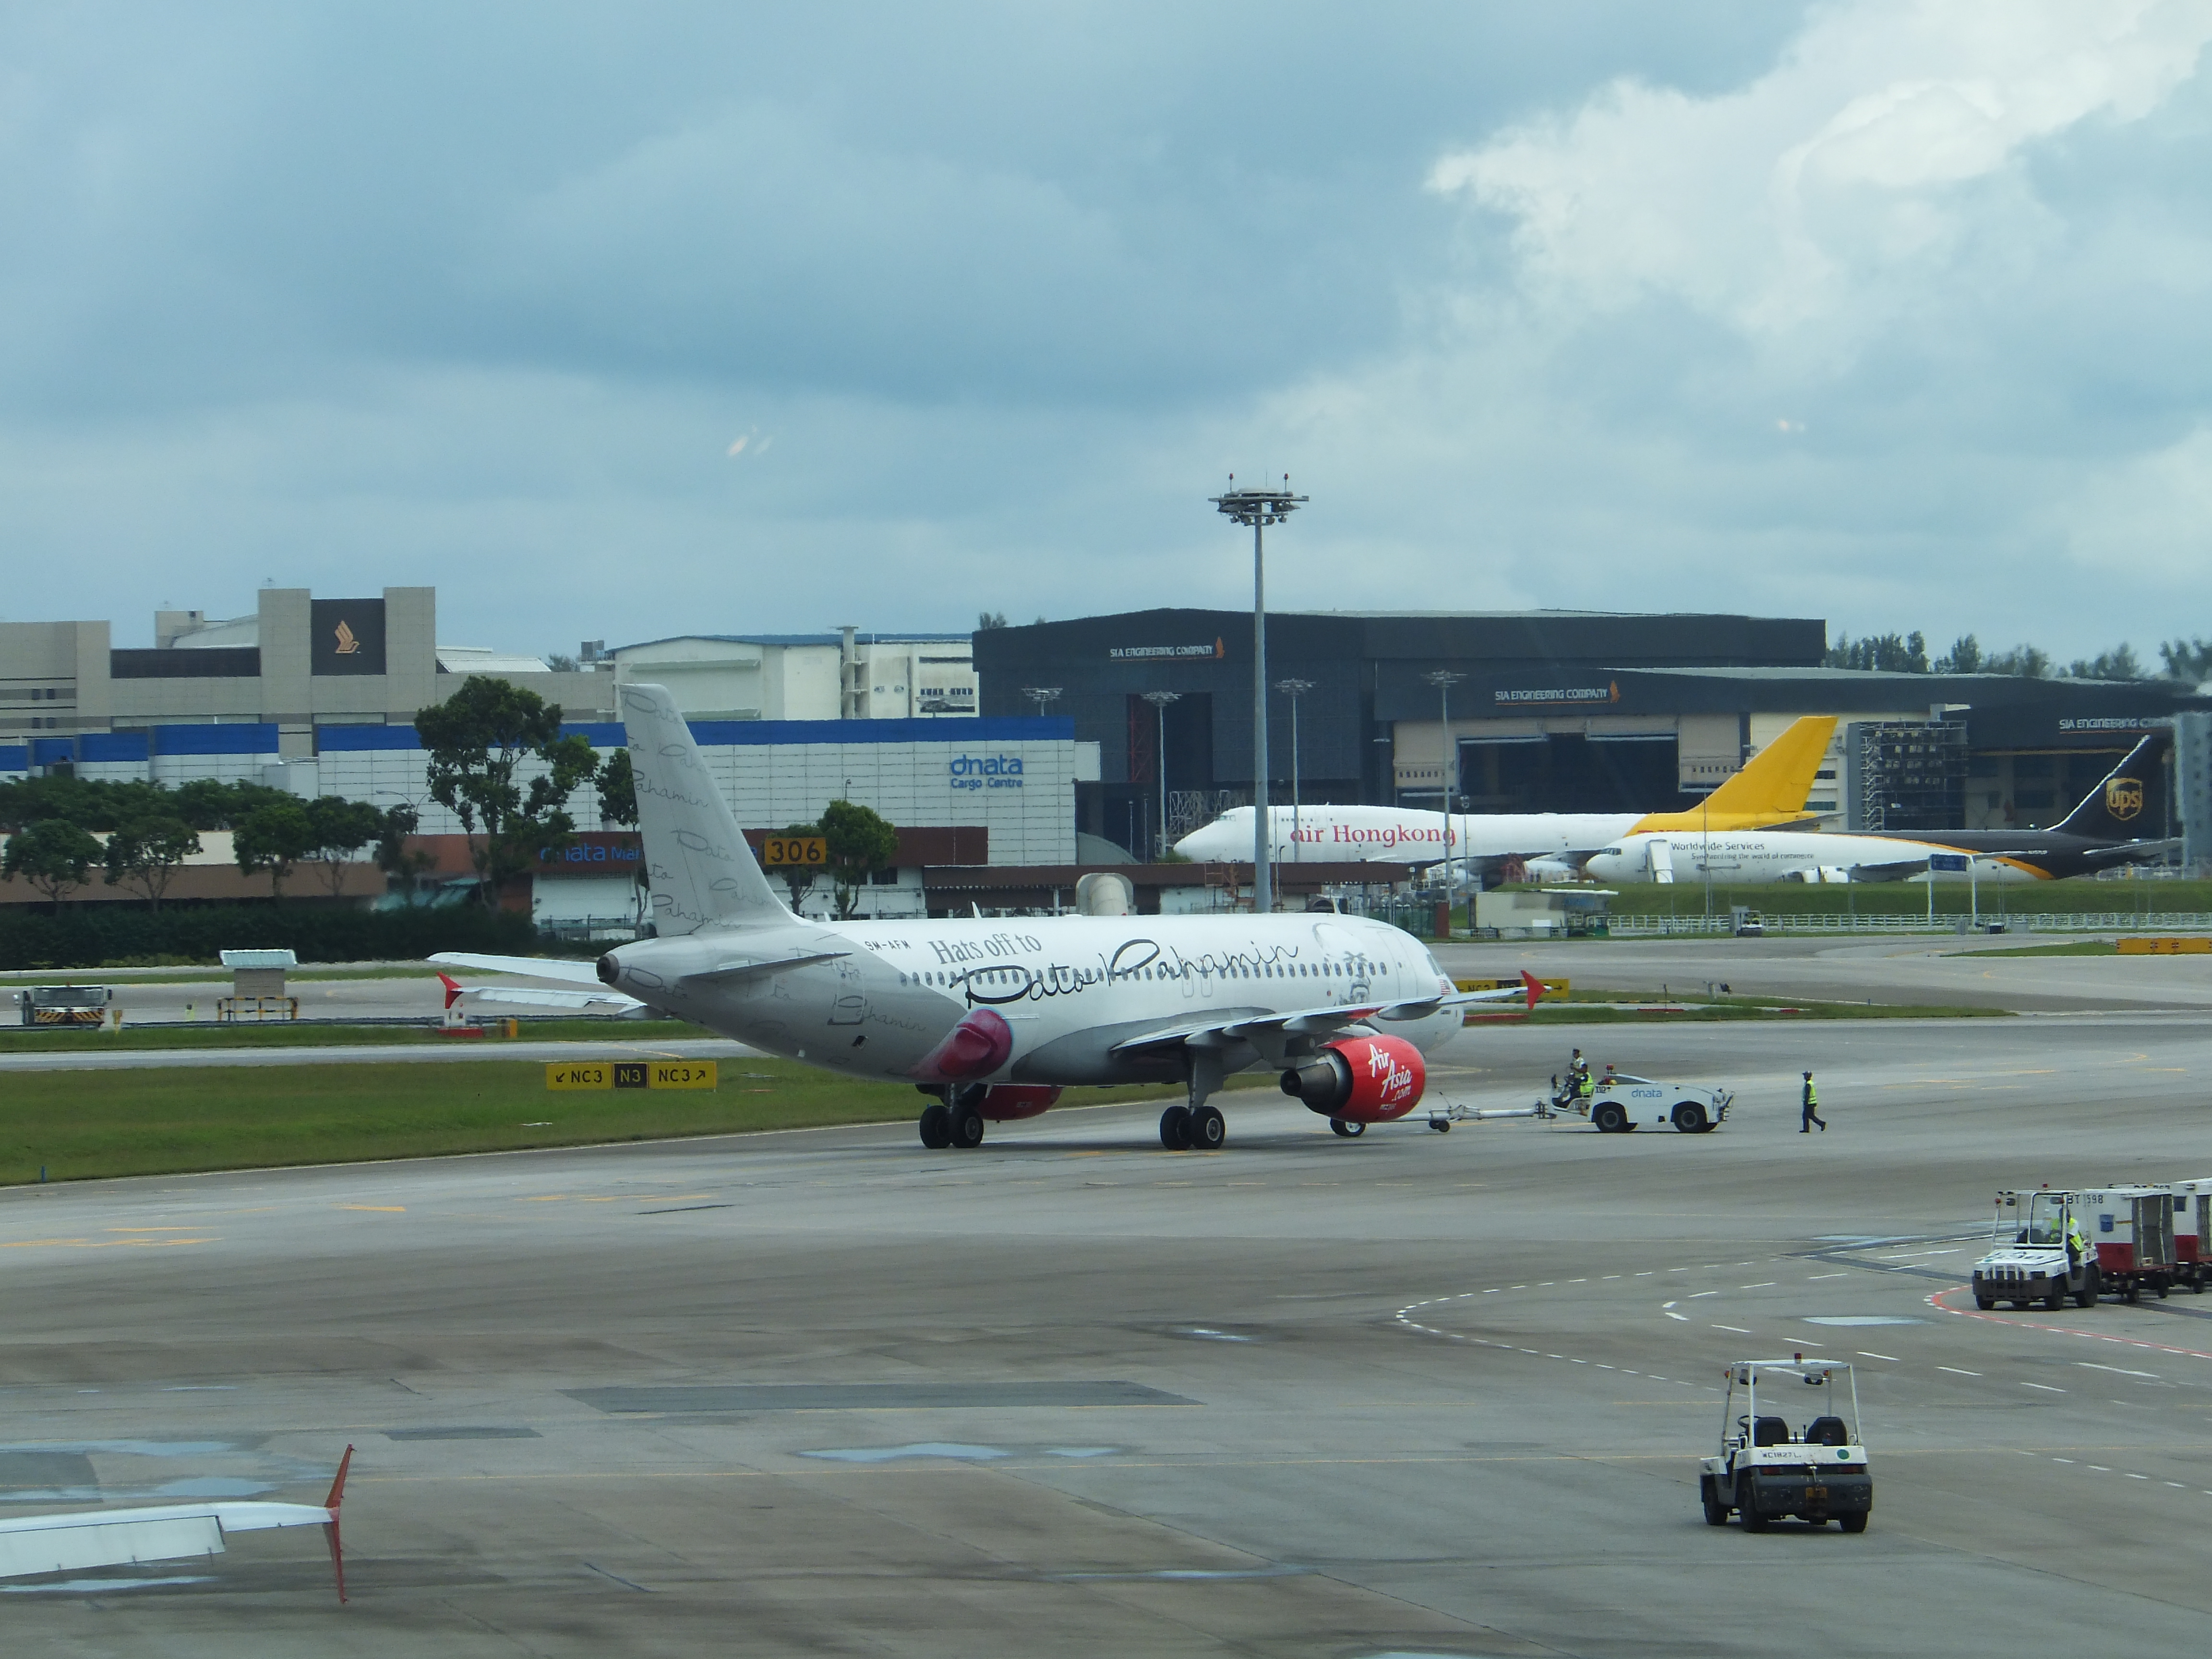 Blue apron engineering - File Airasia Airbus A320 216 9m Afm Leaving Apron By Tractor In Singapore